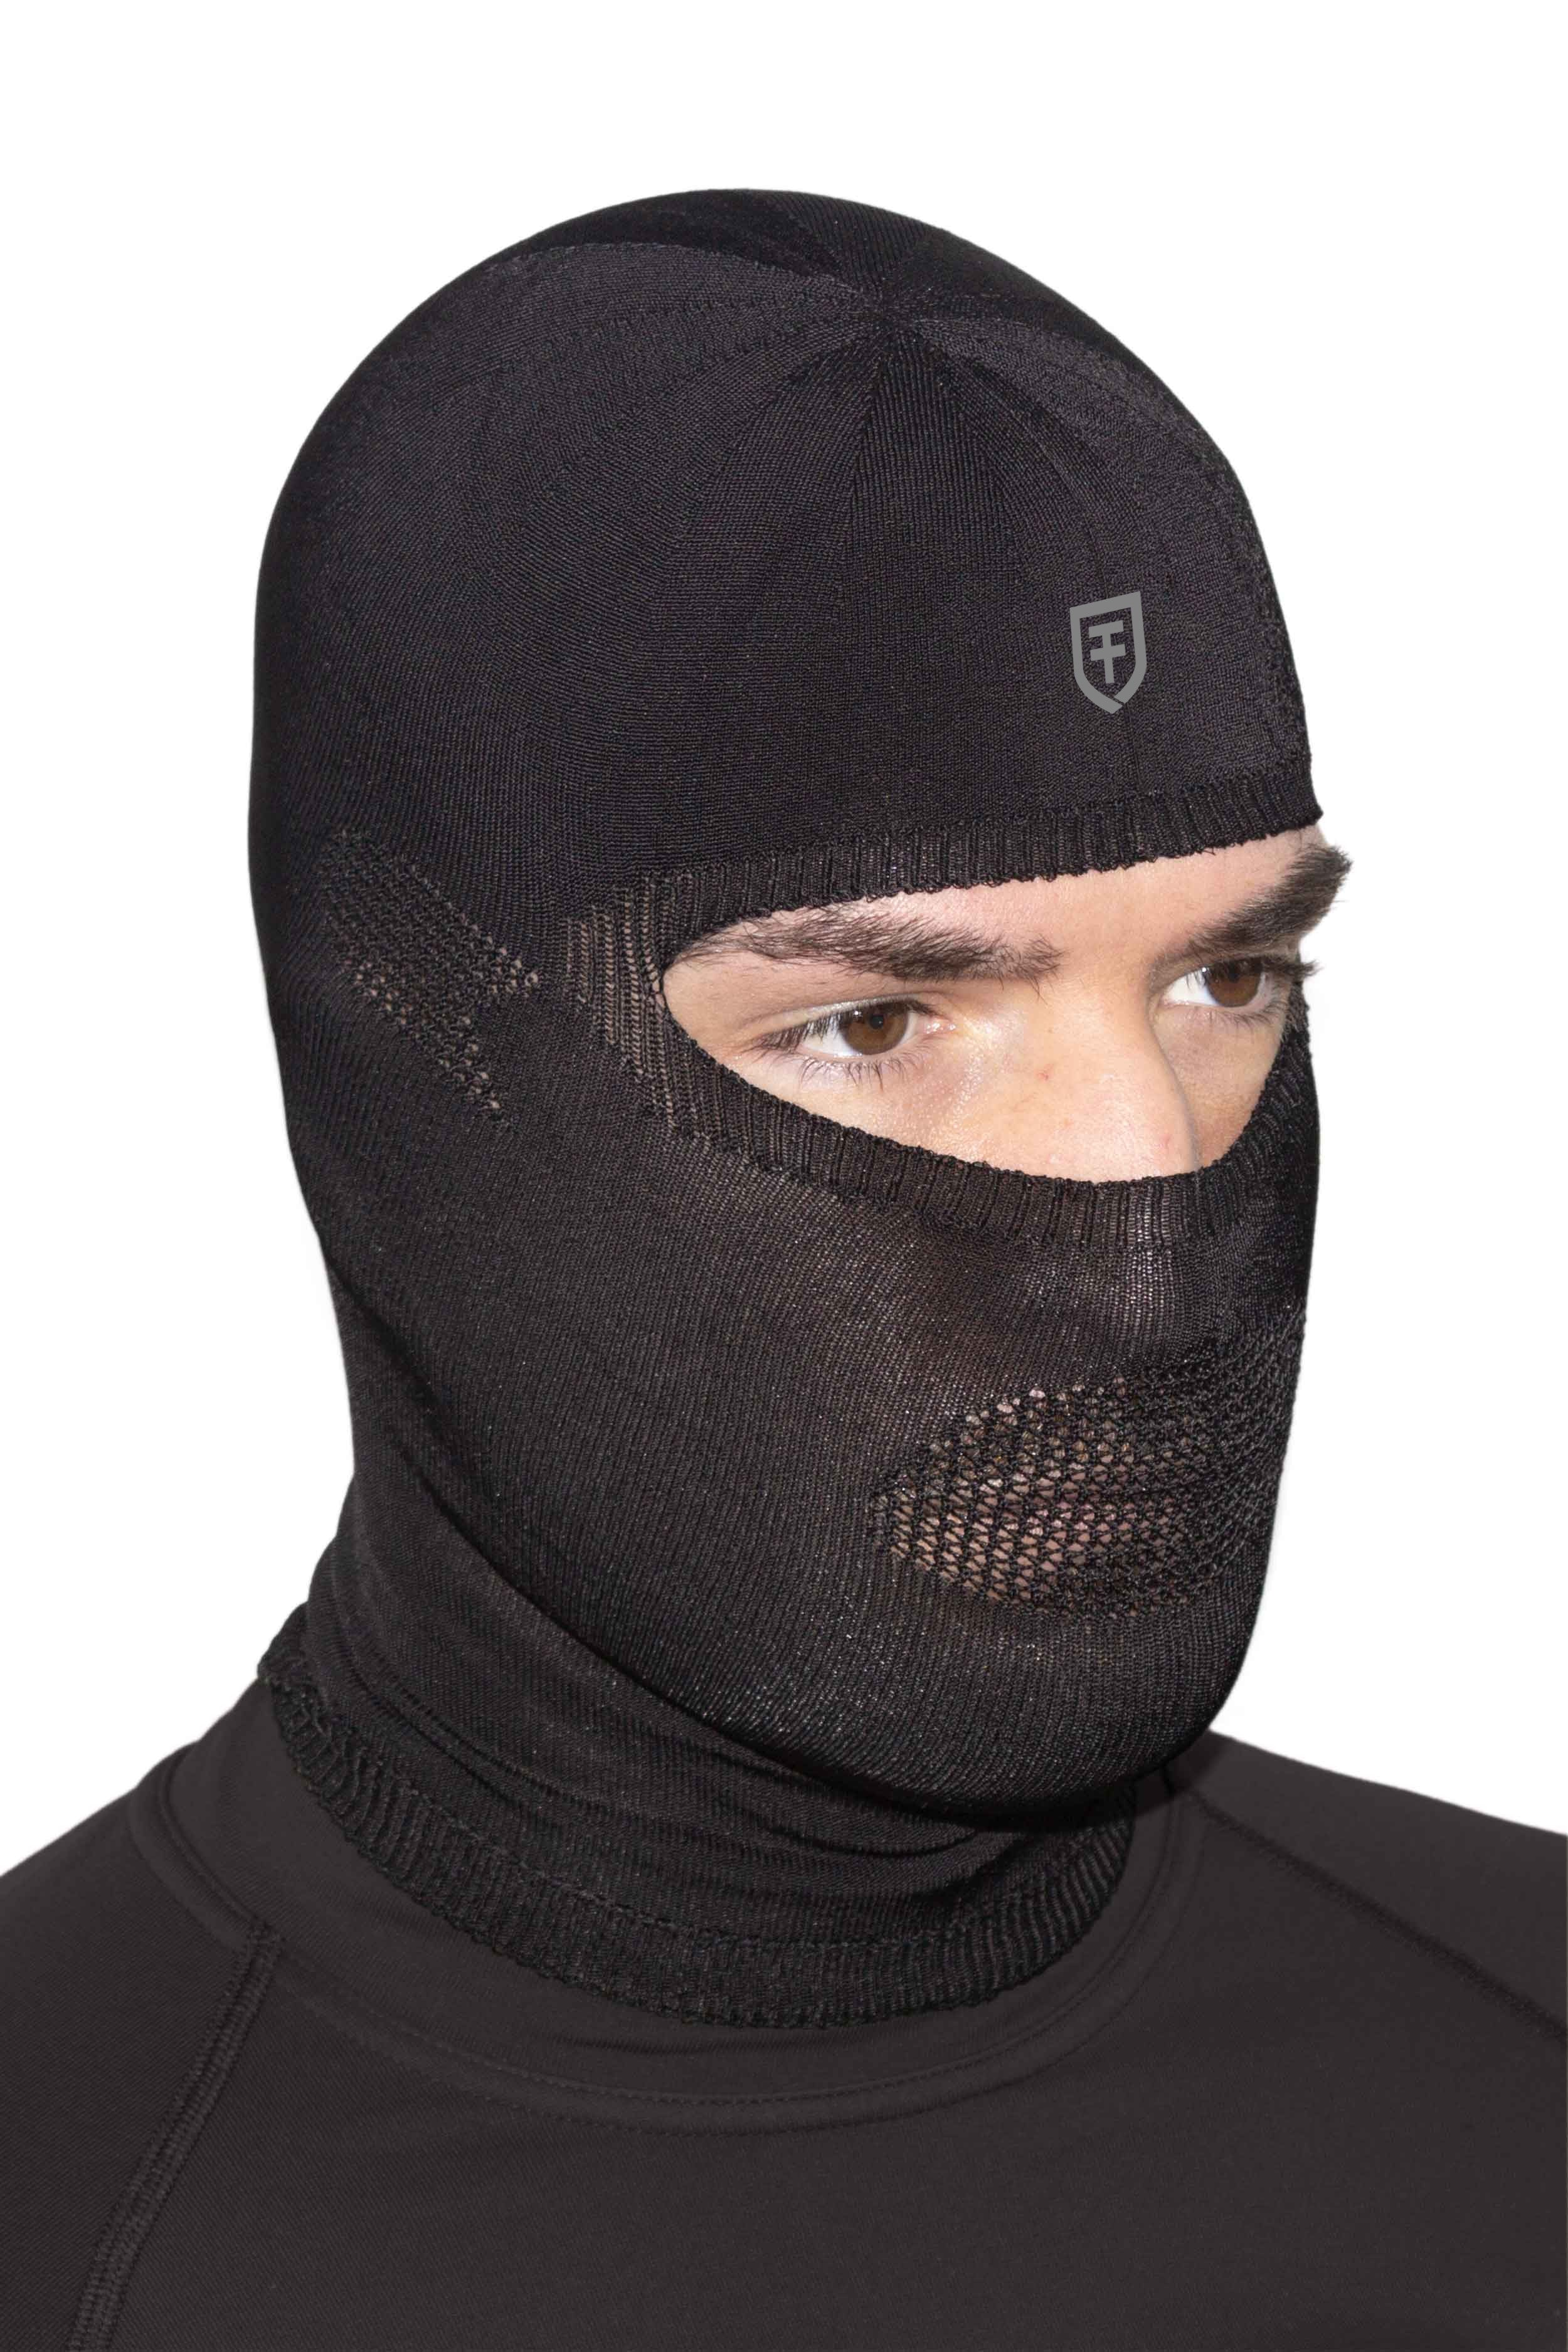 ABSOLUTE NO SEAMS BALACLAVA